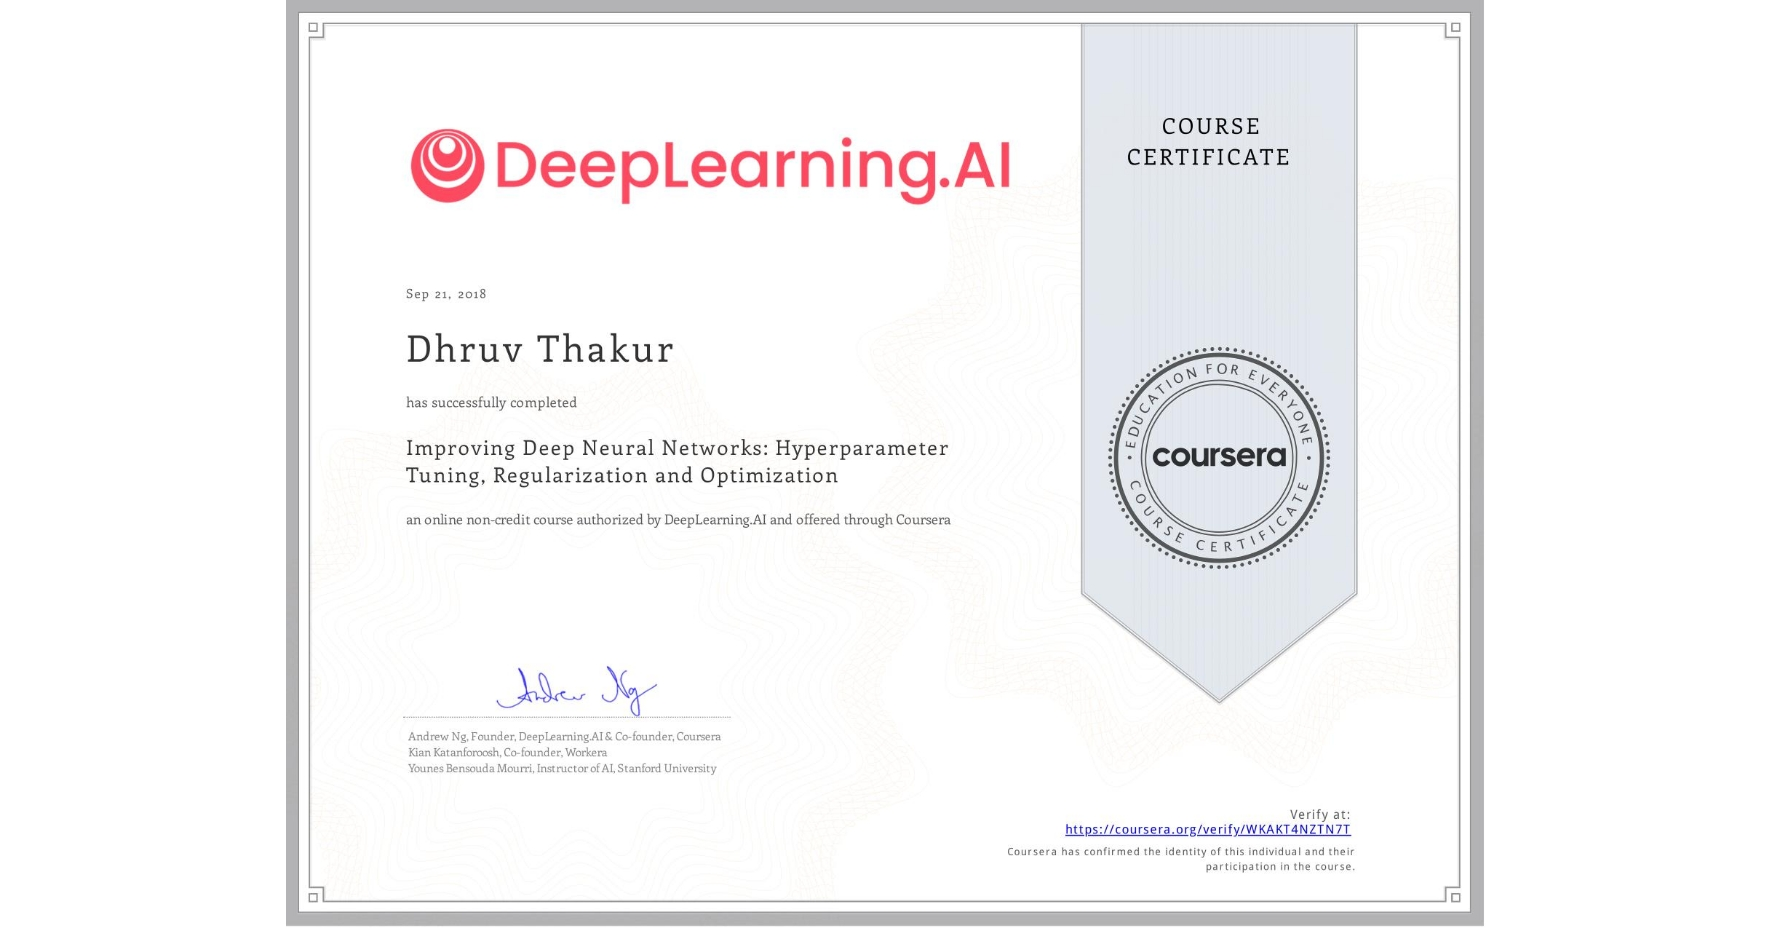 View certificate for Dhruv Thakur, Improving Deep Neural Networks: Hyperparameter tuning, Regularization and Optimization, an online non-credit course authorized by DeepLearning.AI and offered through Coursera